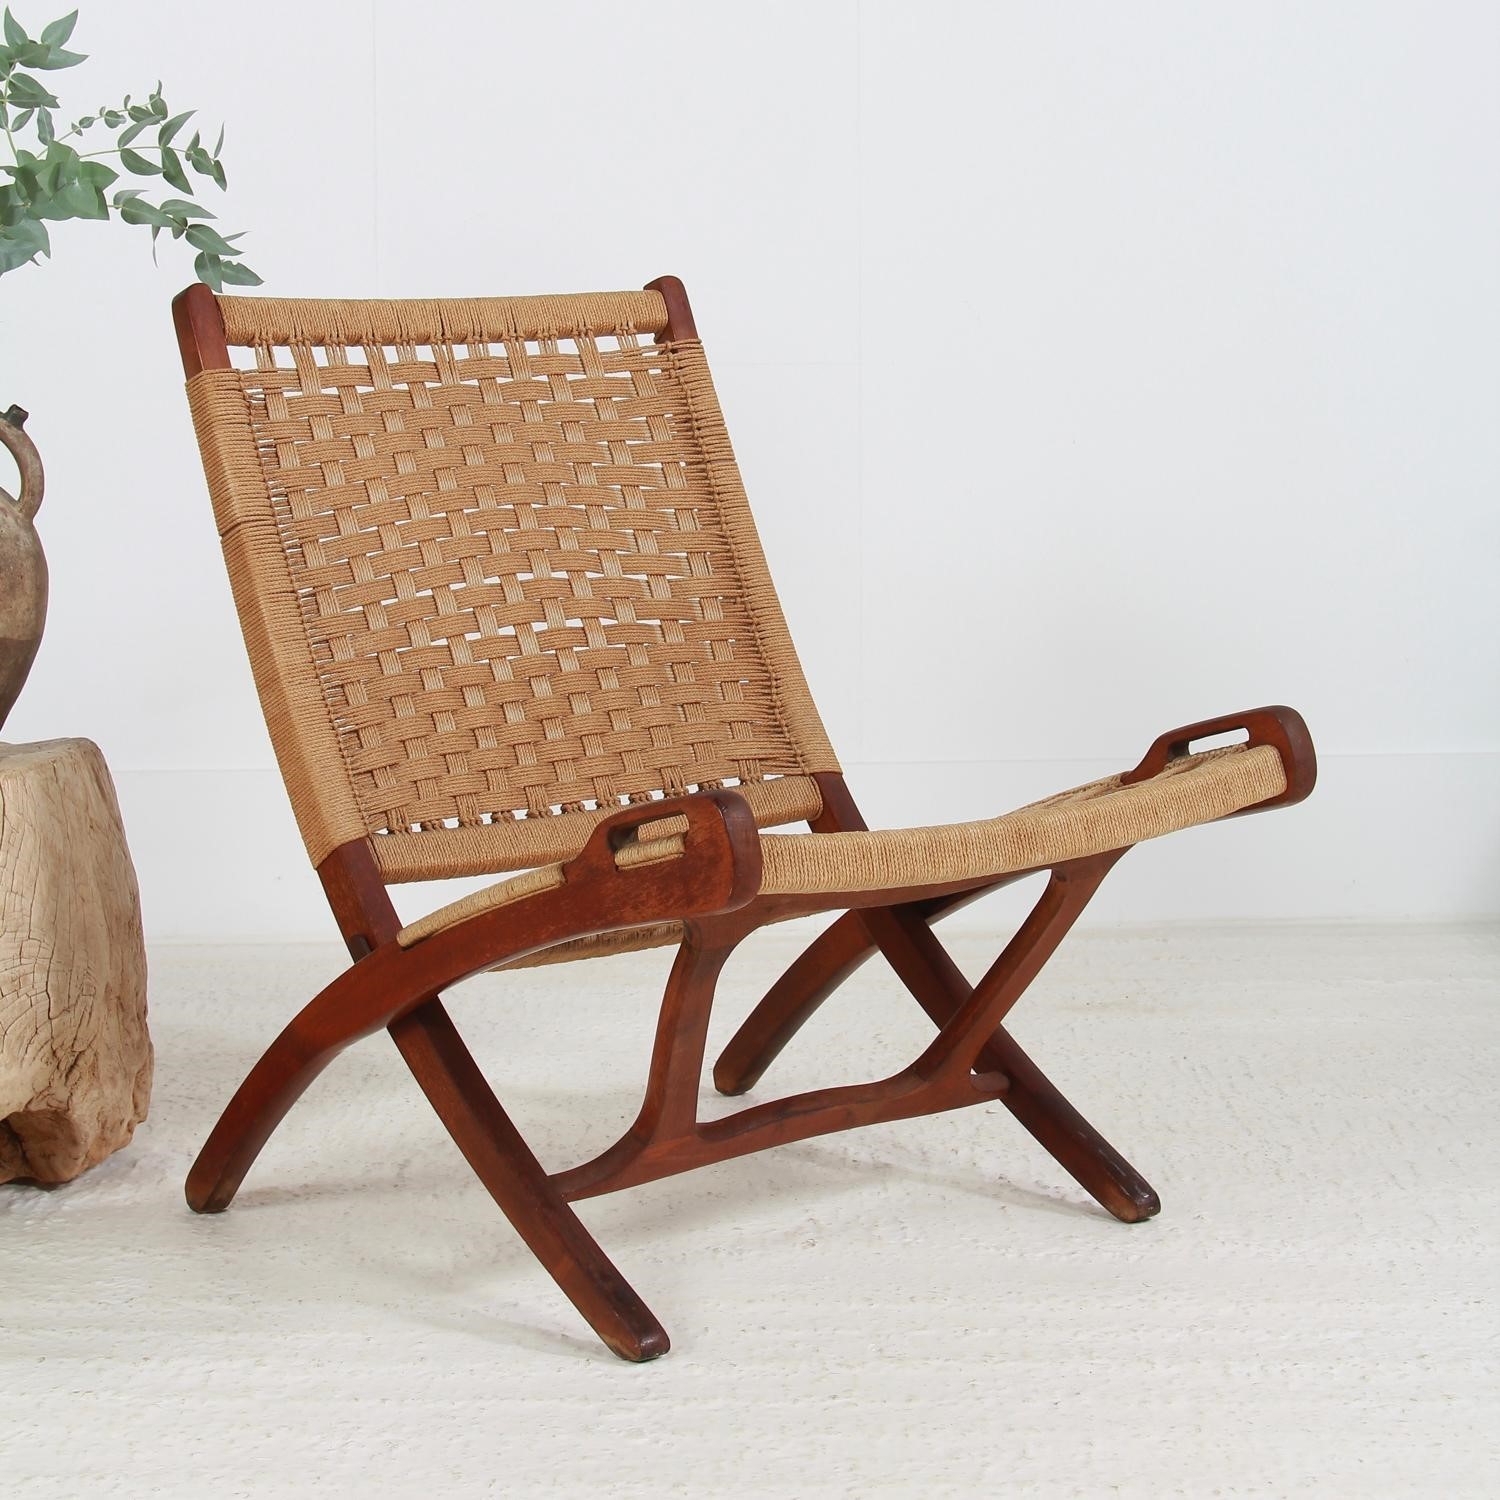 Super Mid Century Hans Wegner Style Folding Rope Chair Ocoug Best Dining Table And Chair Ideas Images Ocougorg